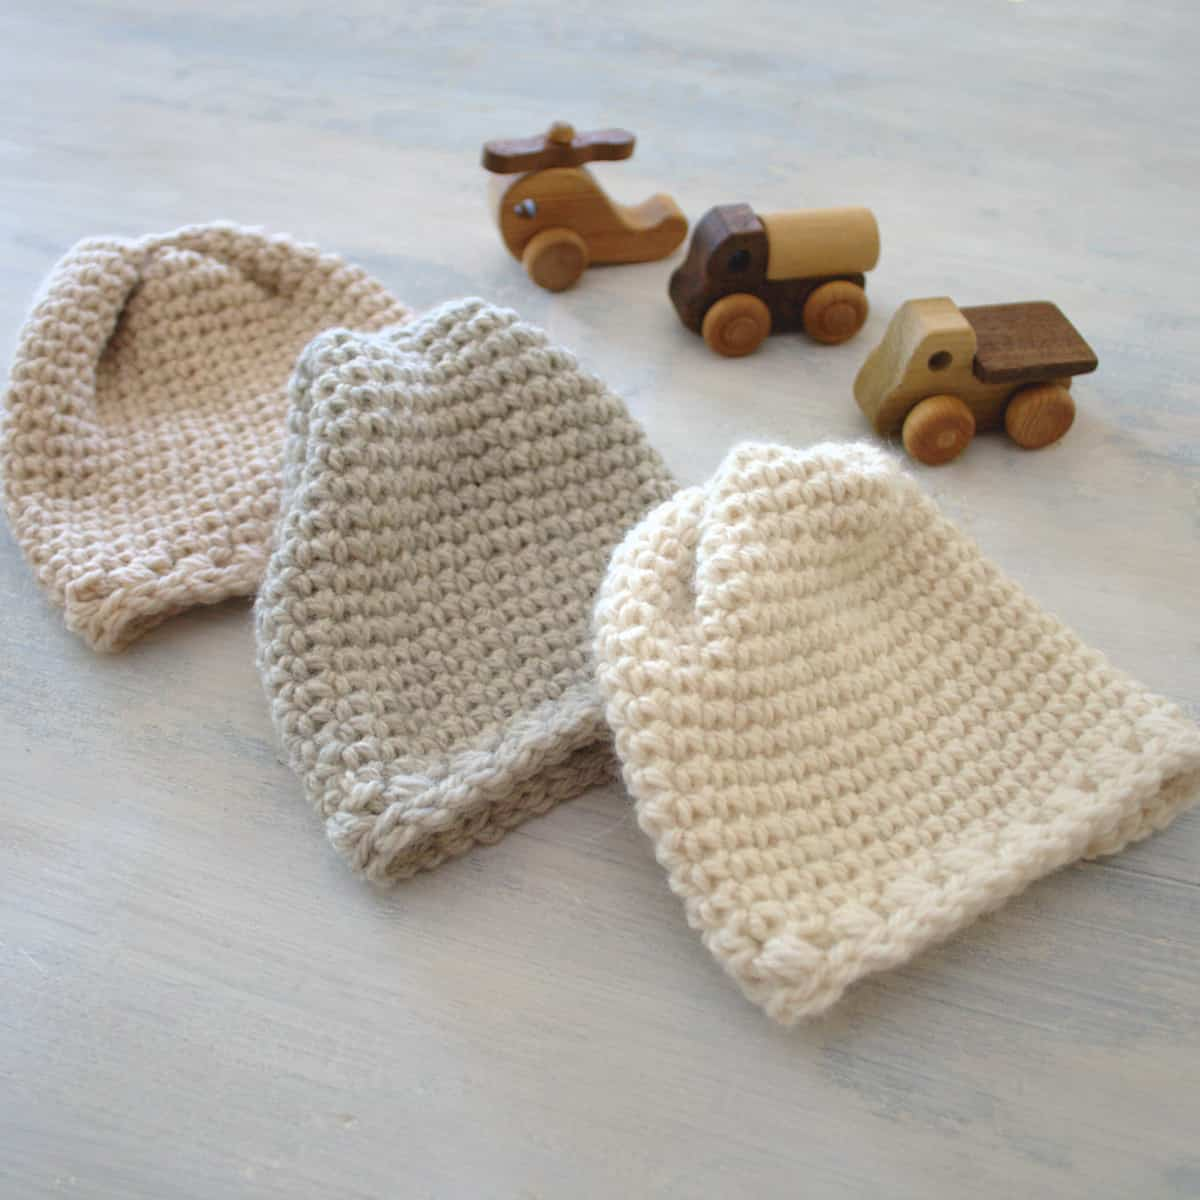 Adorable Sugar Sprout Hat - These free newborn crochet hat patterns are fun and easy to work on. These baby accessories are so fast to make and anyone can do it. #CrochetBabyHatPatterns #CrochetHatPatterns #CrochetNewbornHats